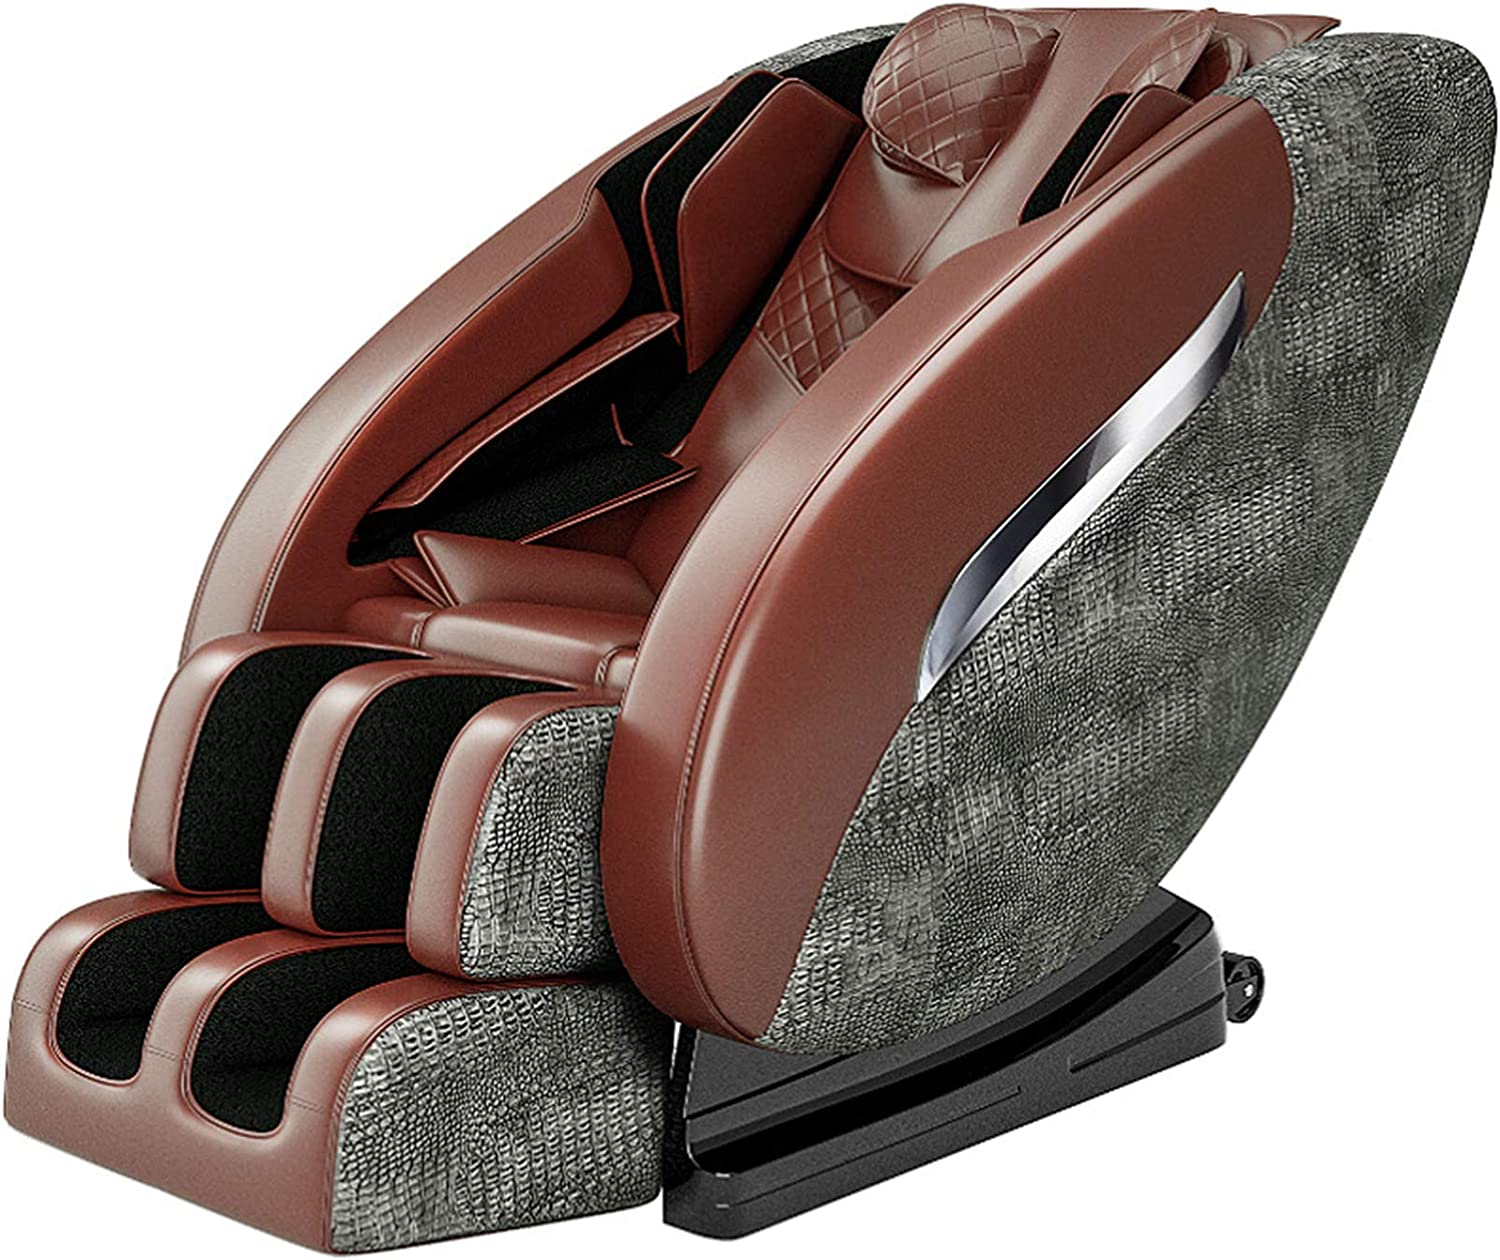 TXYJ Zero Gravity Massage Chair B Heating Electric Large discharge Ranking TOP5 sale Full Recliner